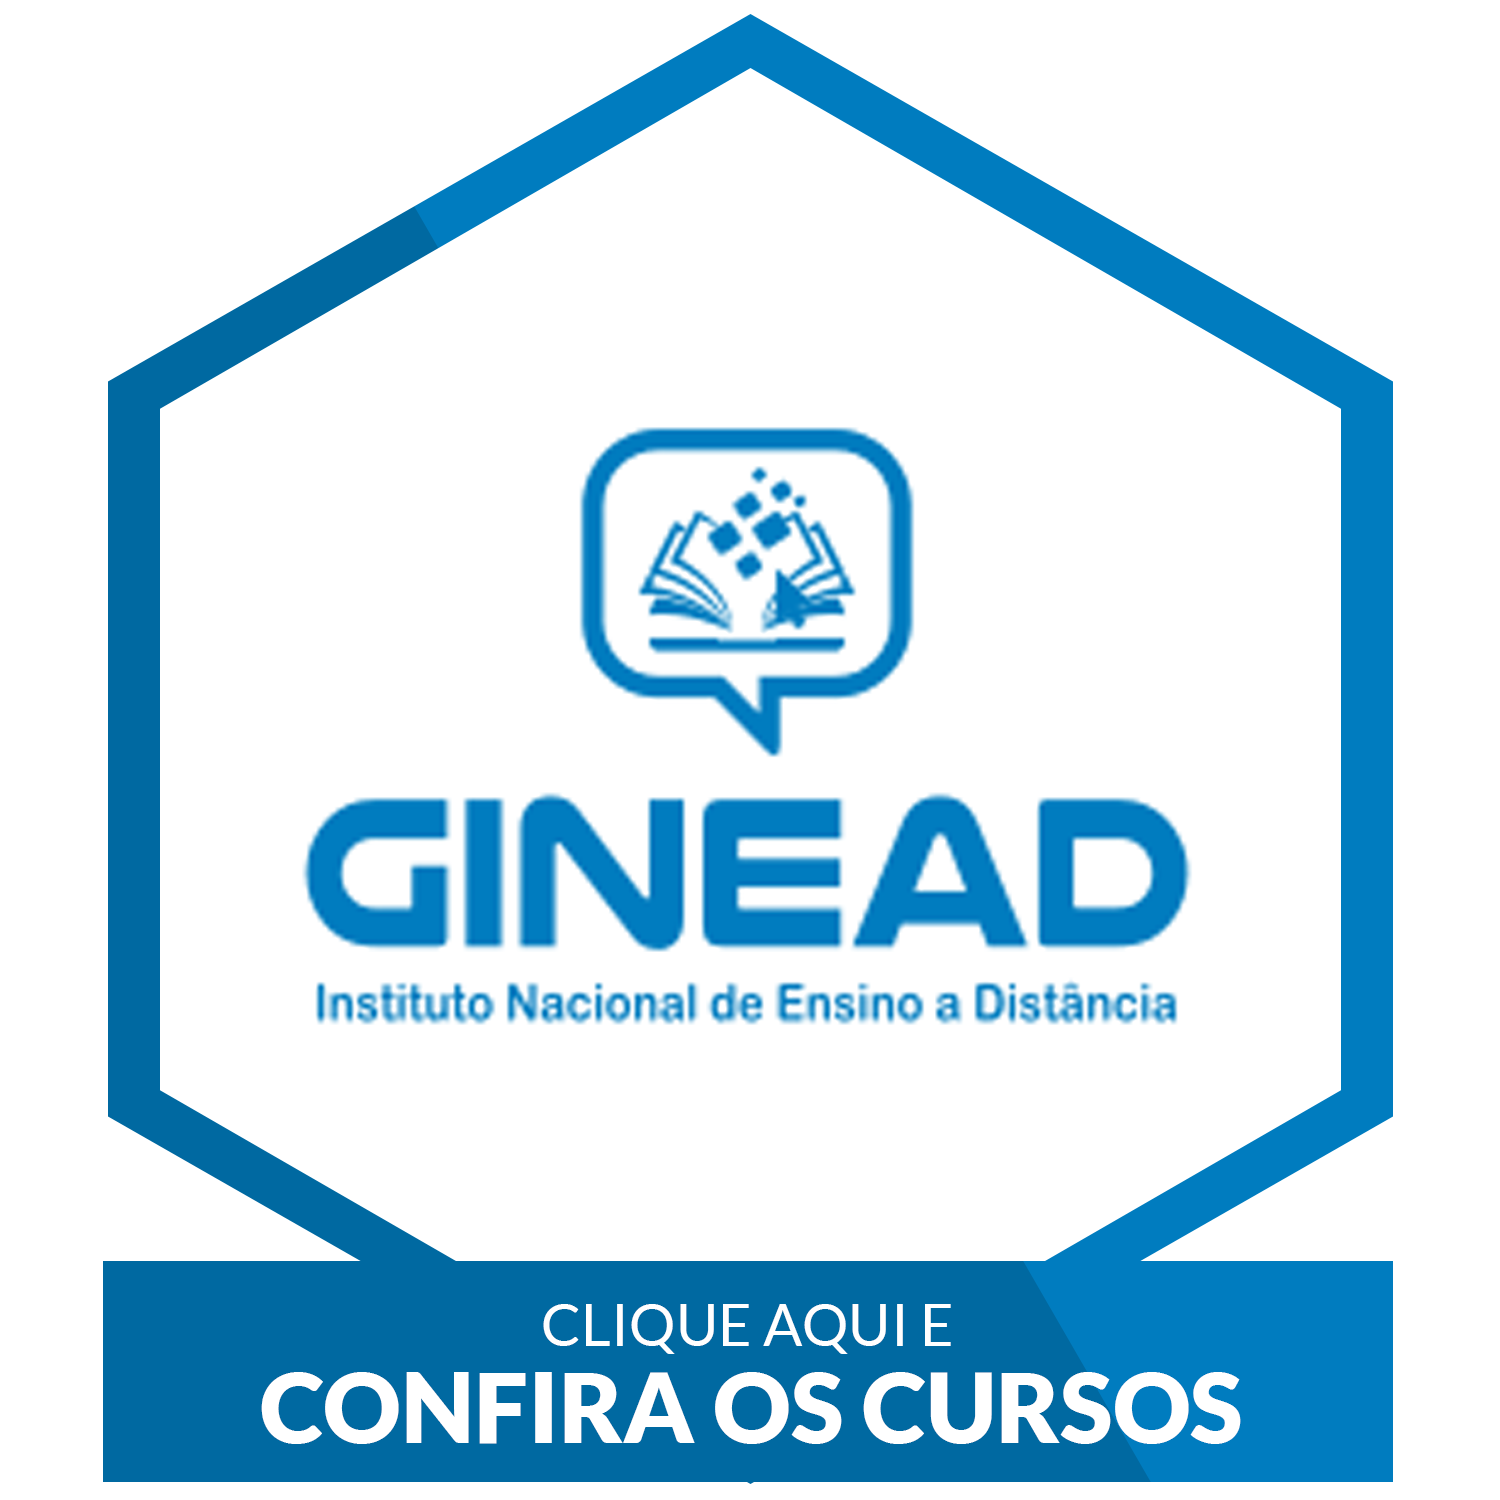 logo-ginead.png